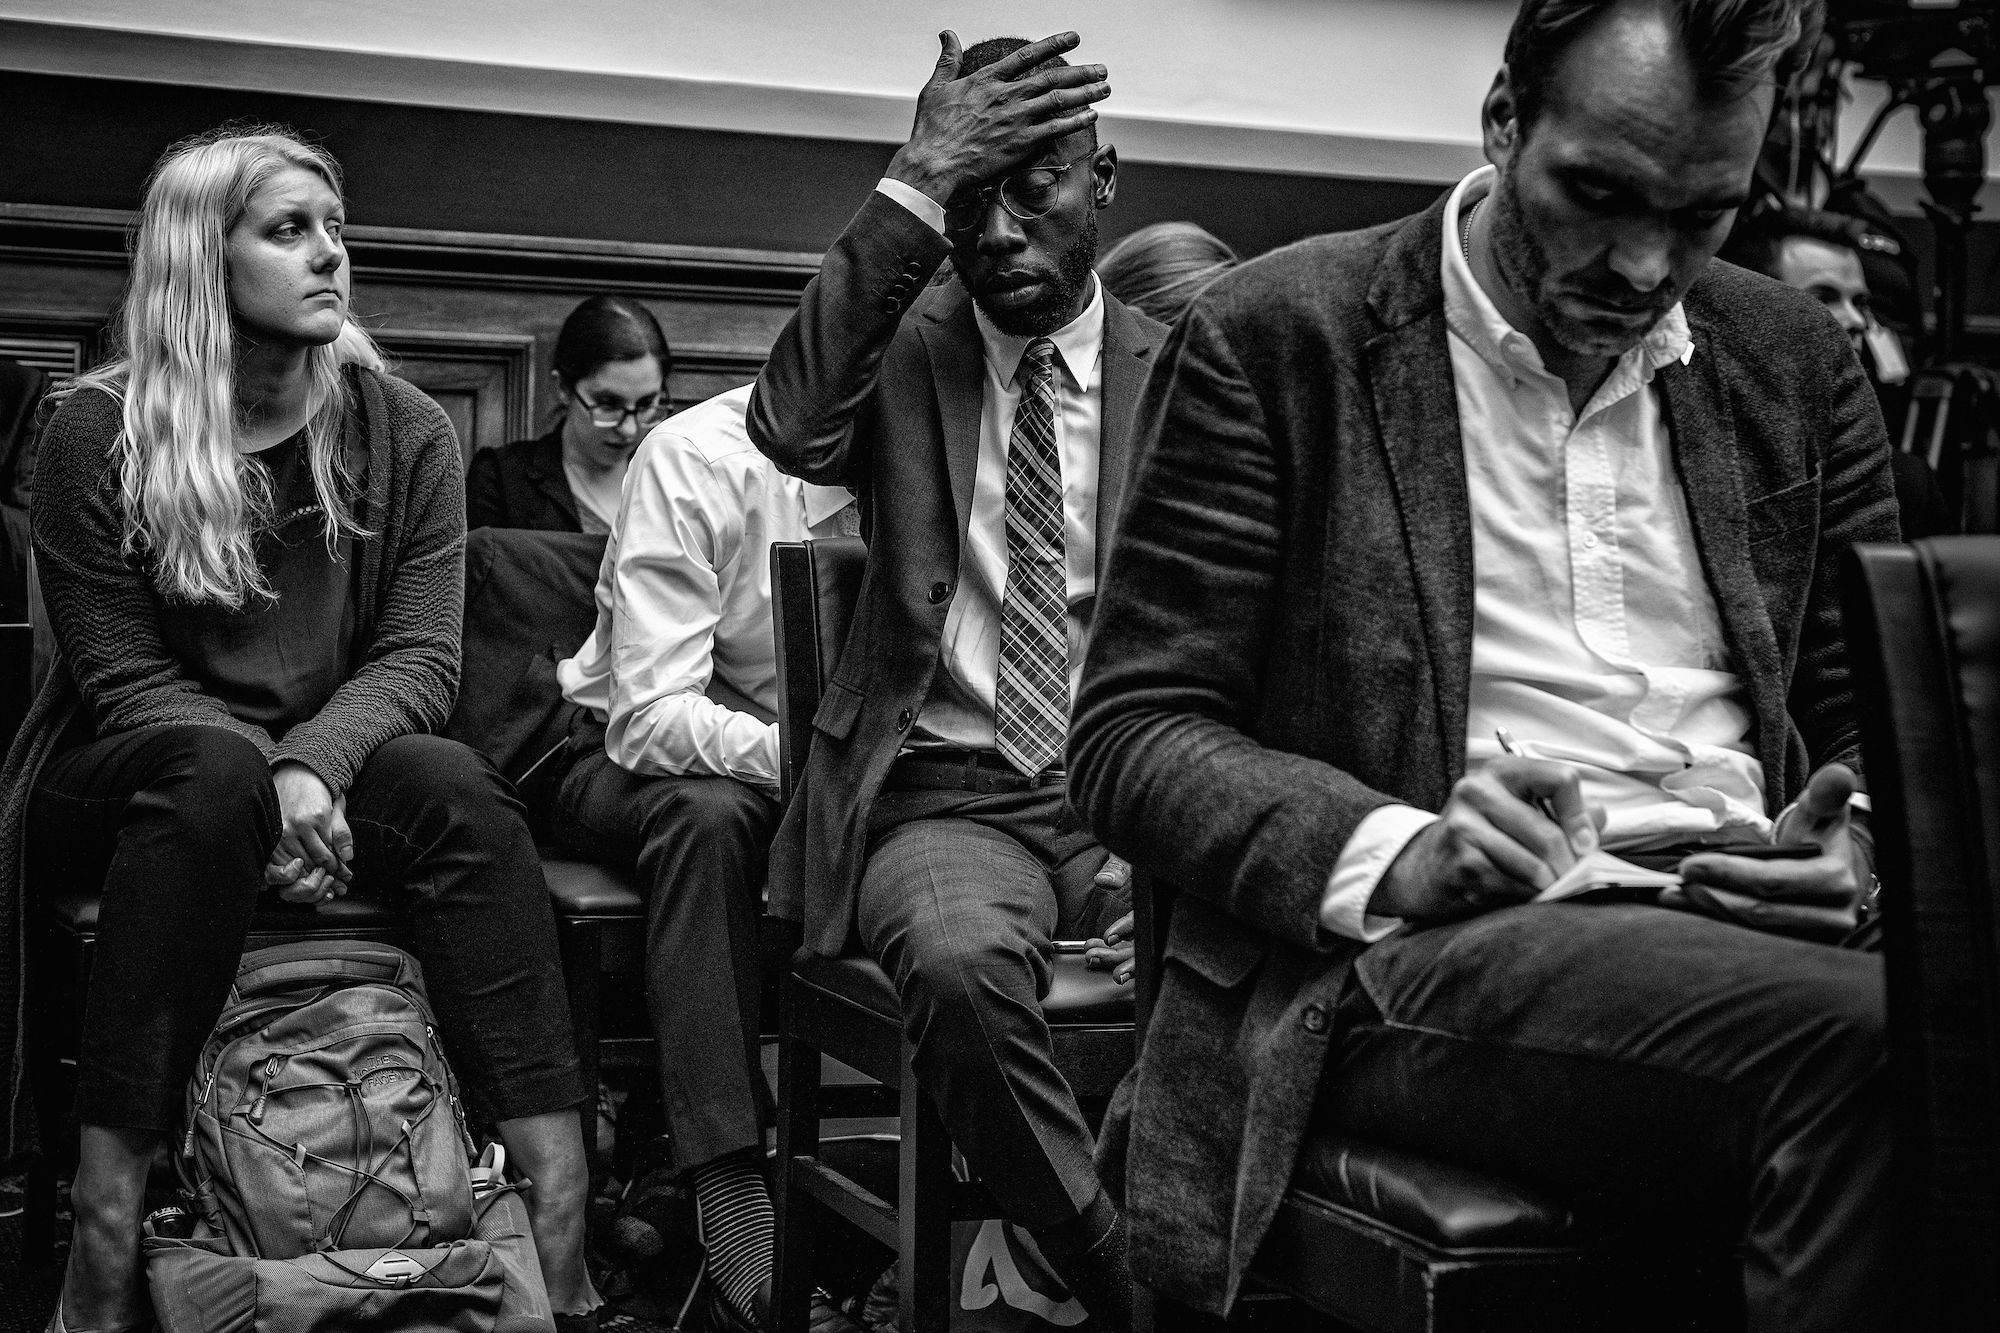 Day 915: Spectators watch former Special counsel Robert Mueller testify before the House Judiciary Committee in the Rayburn House Office Building in Washington, DC on July 24th, 2019.